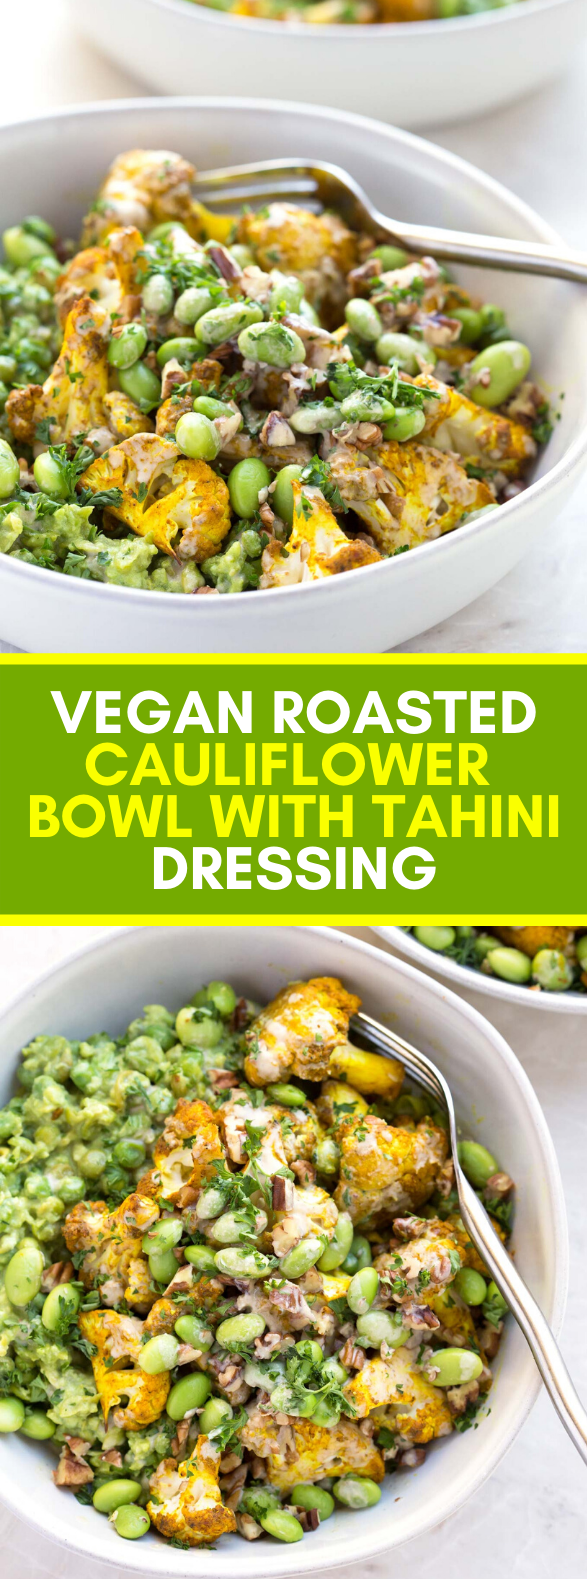 VEGAN ROASTED CAULIFLOWER BOWL WITH TAHINI DRESSING #veggies #healthy